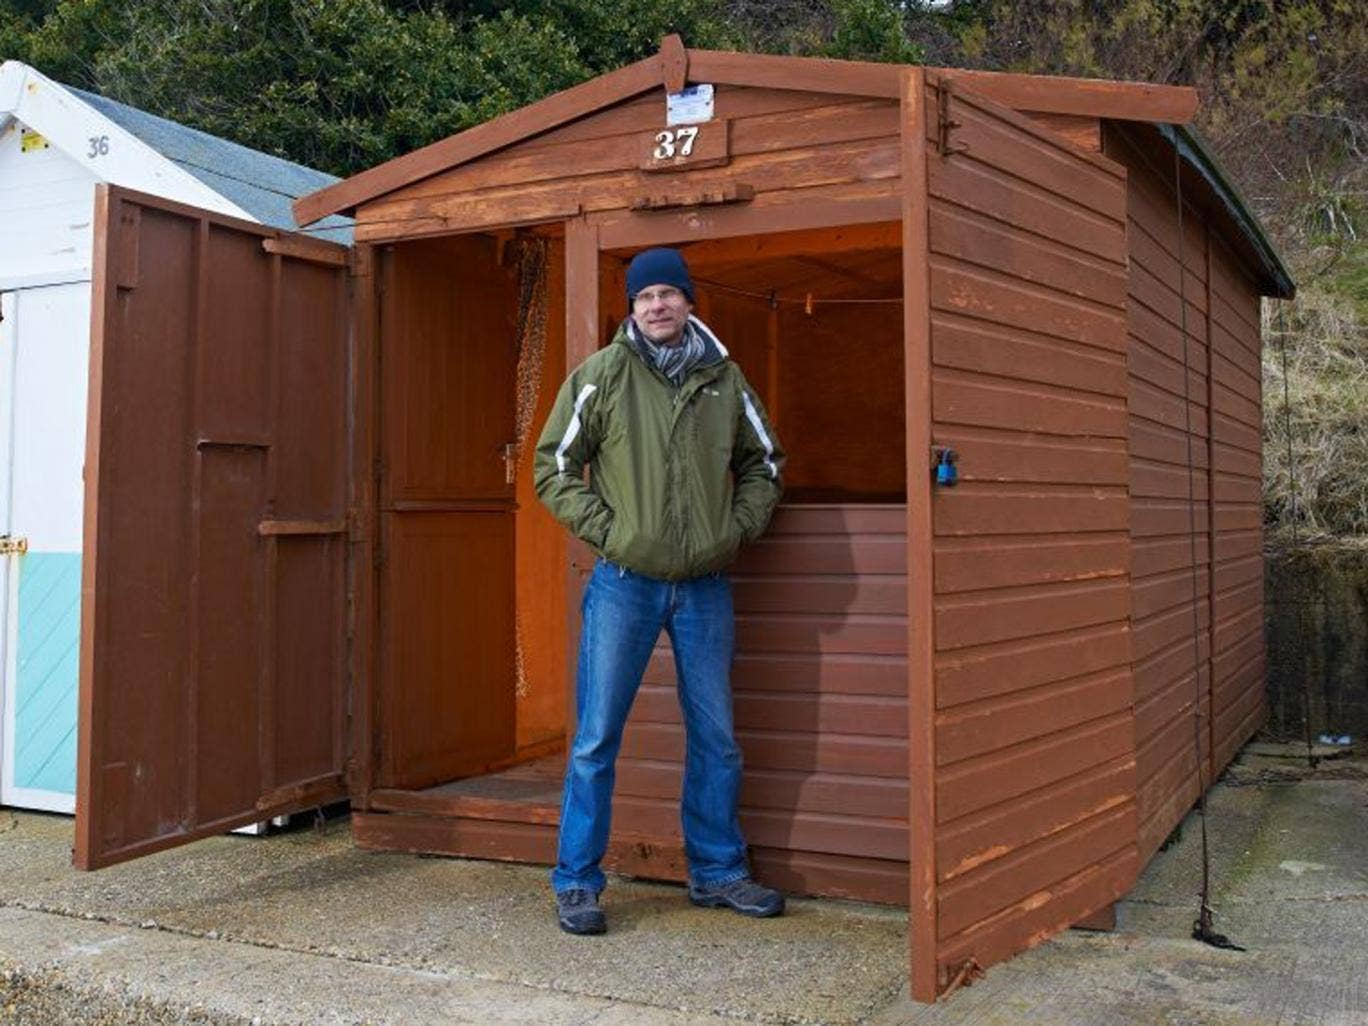 Murray Dellow has been trying to sell his beach hut at Holland-on-Sea since summer 2010